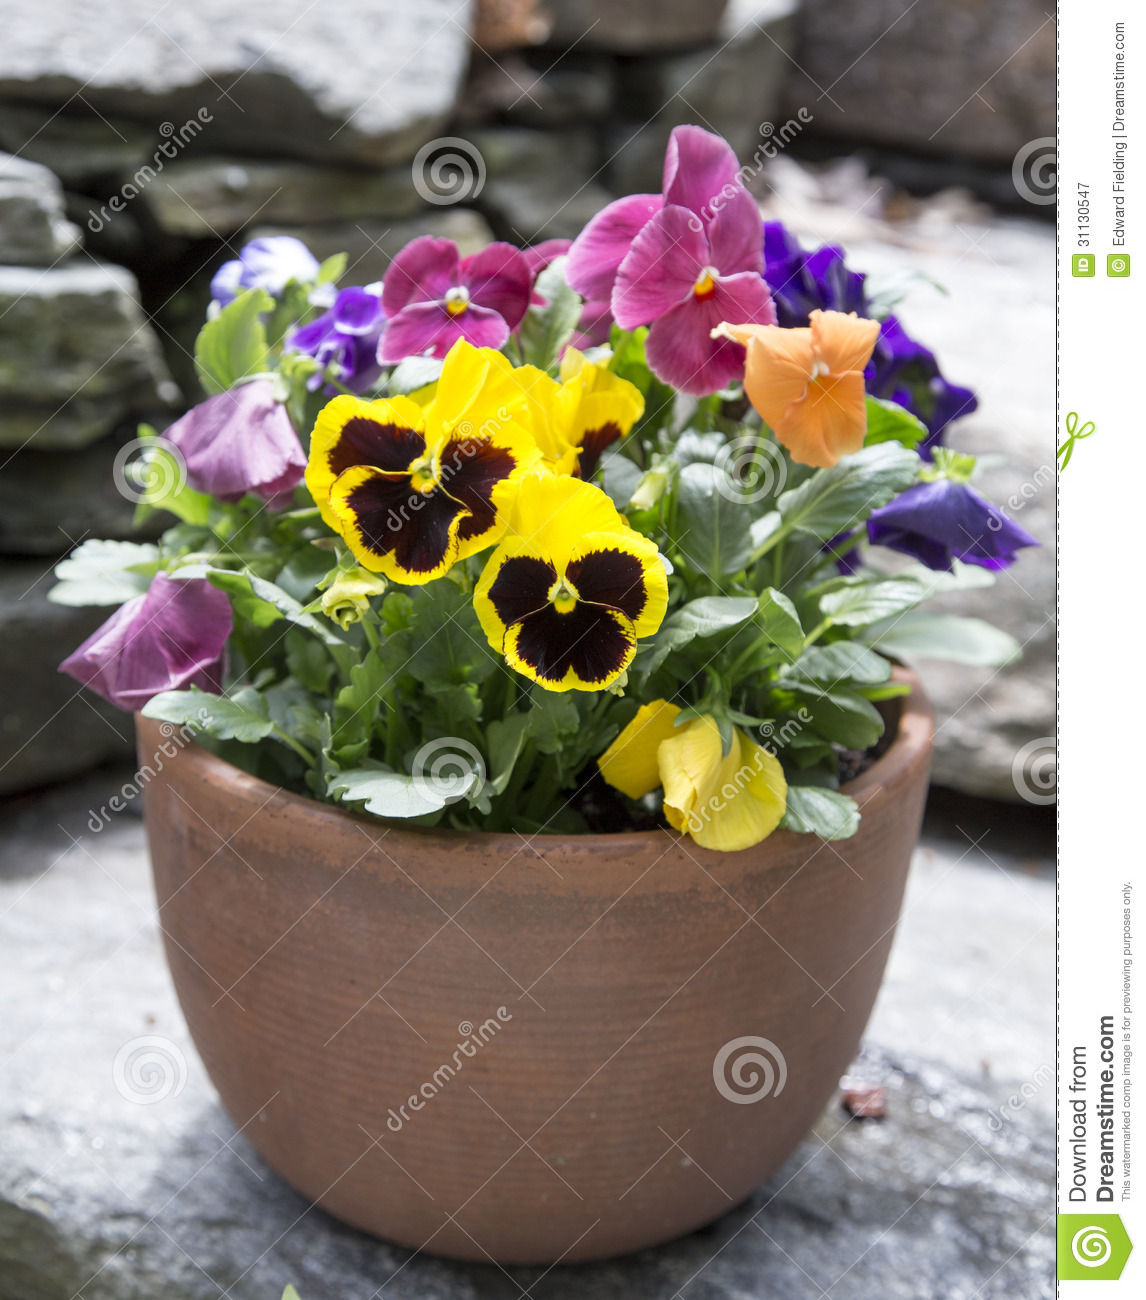 Patio Planter Of Pansy Flowers Stock Image Image Of